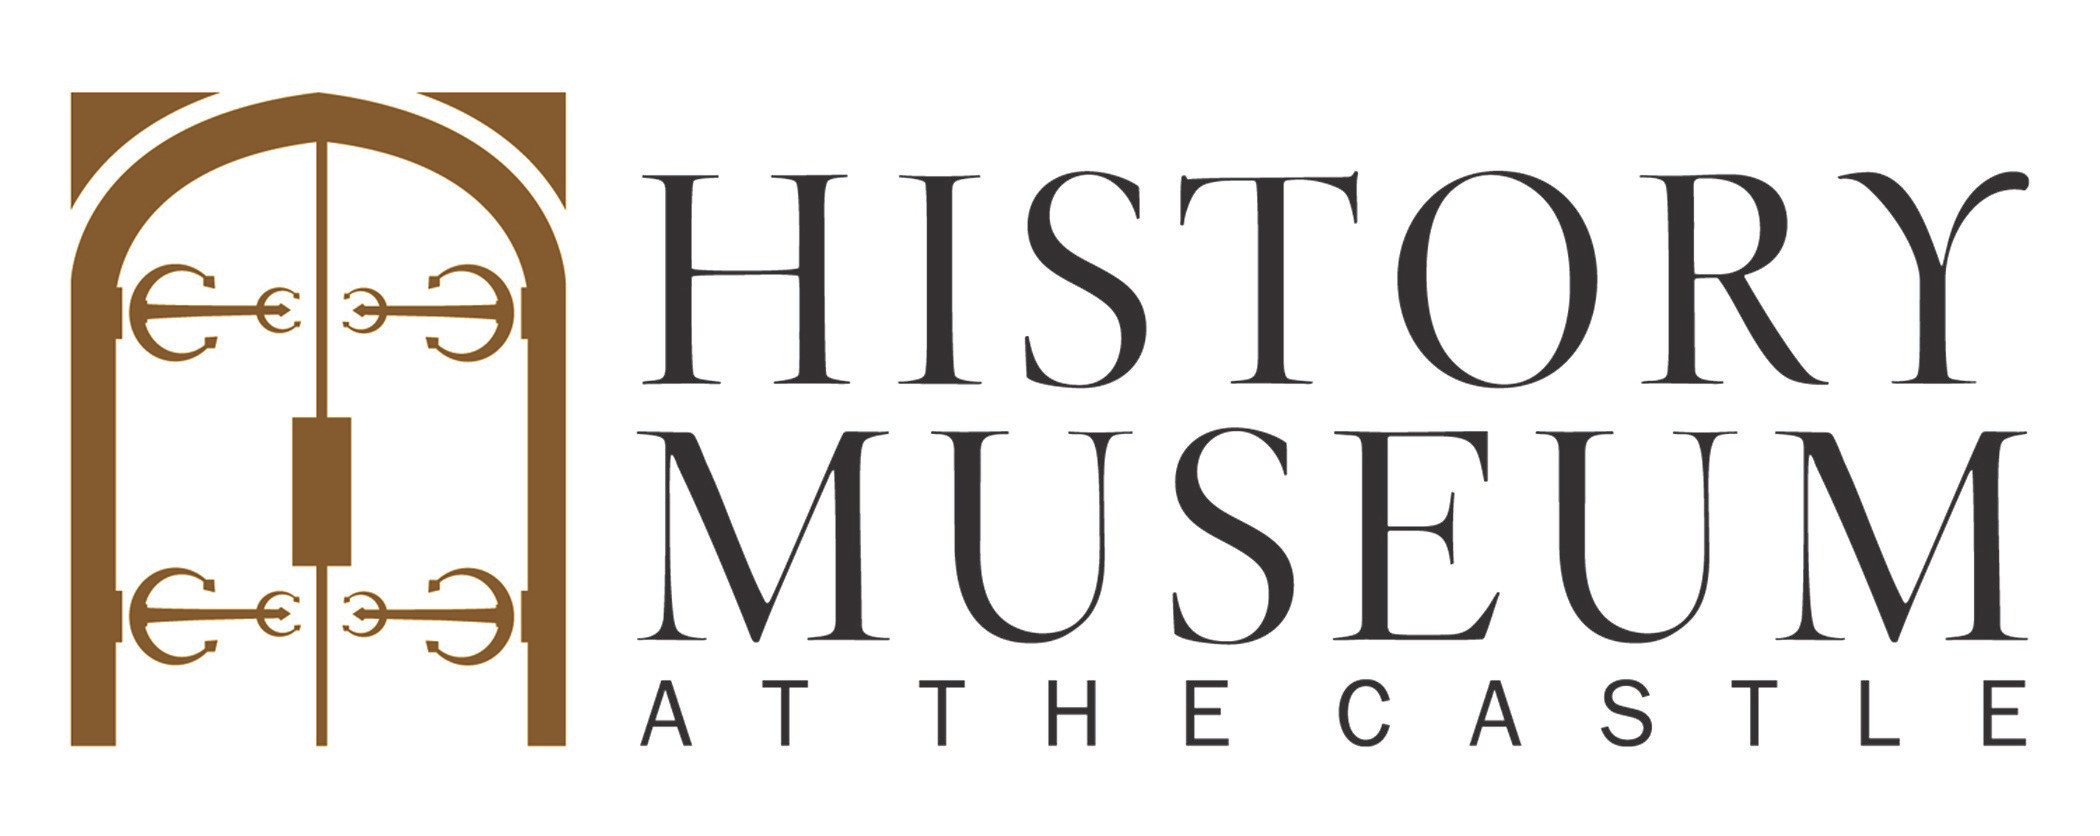 History Museum at the Castle logo